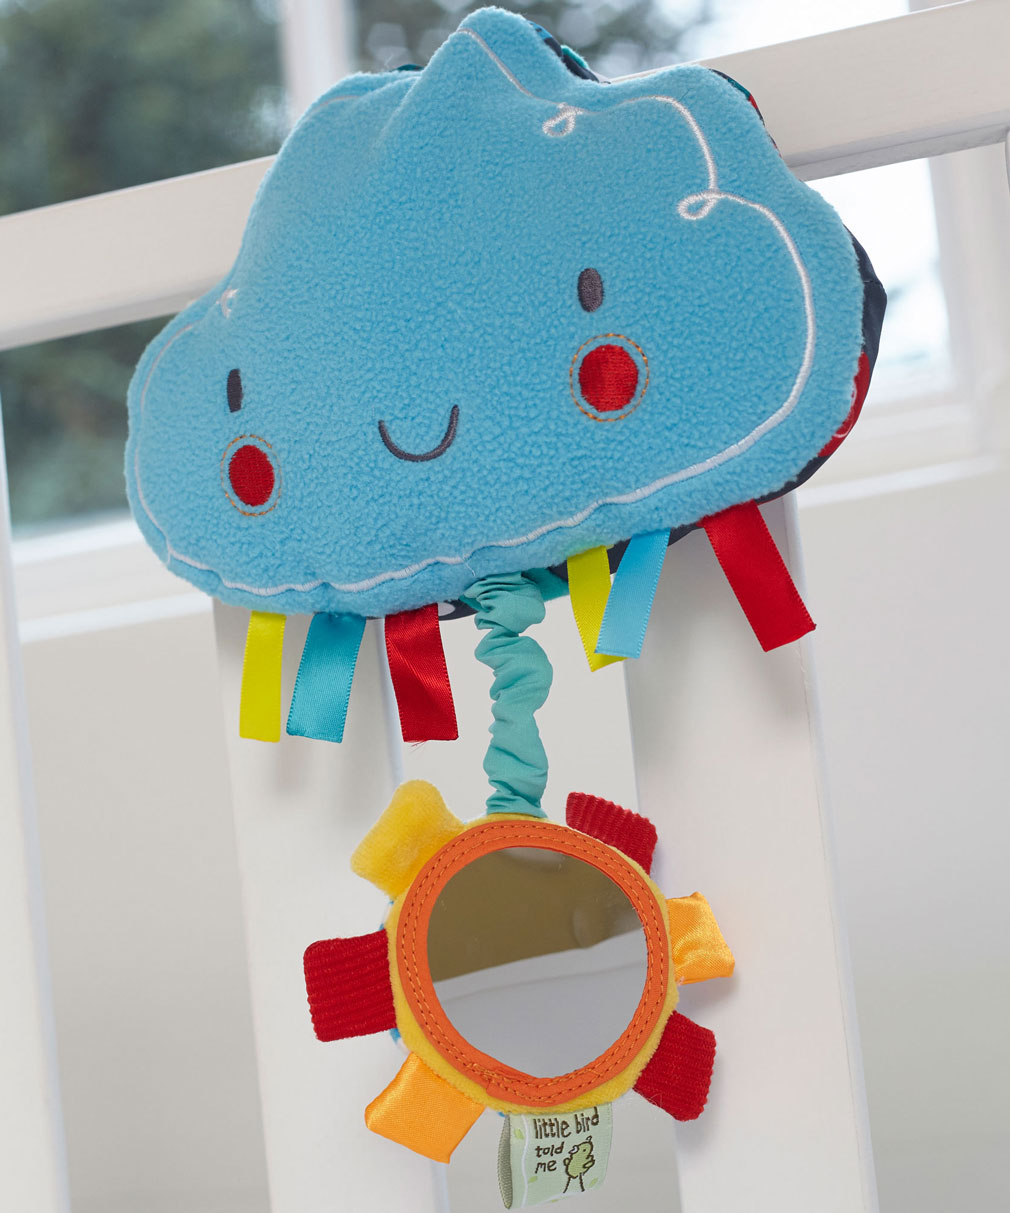 Fluffy Cloud Musical Pull Toy